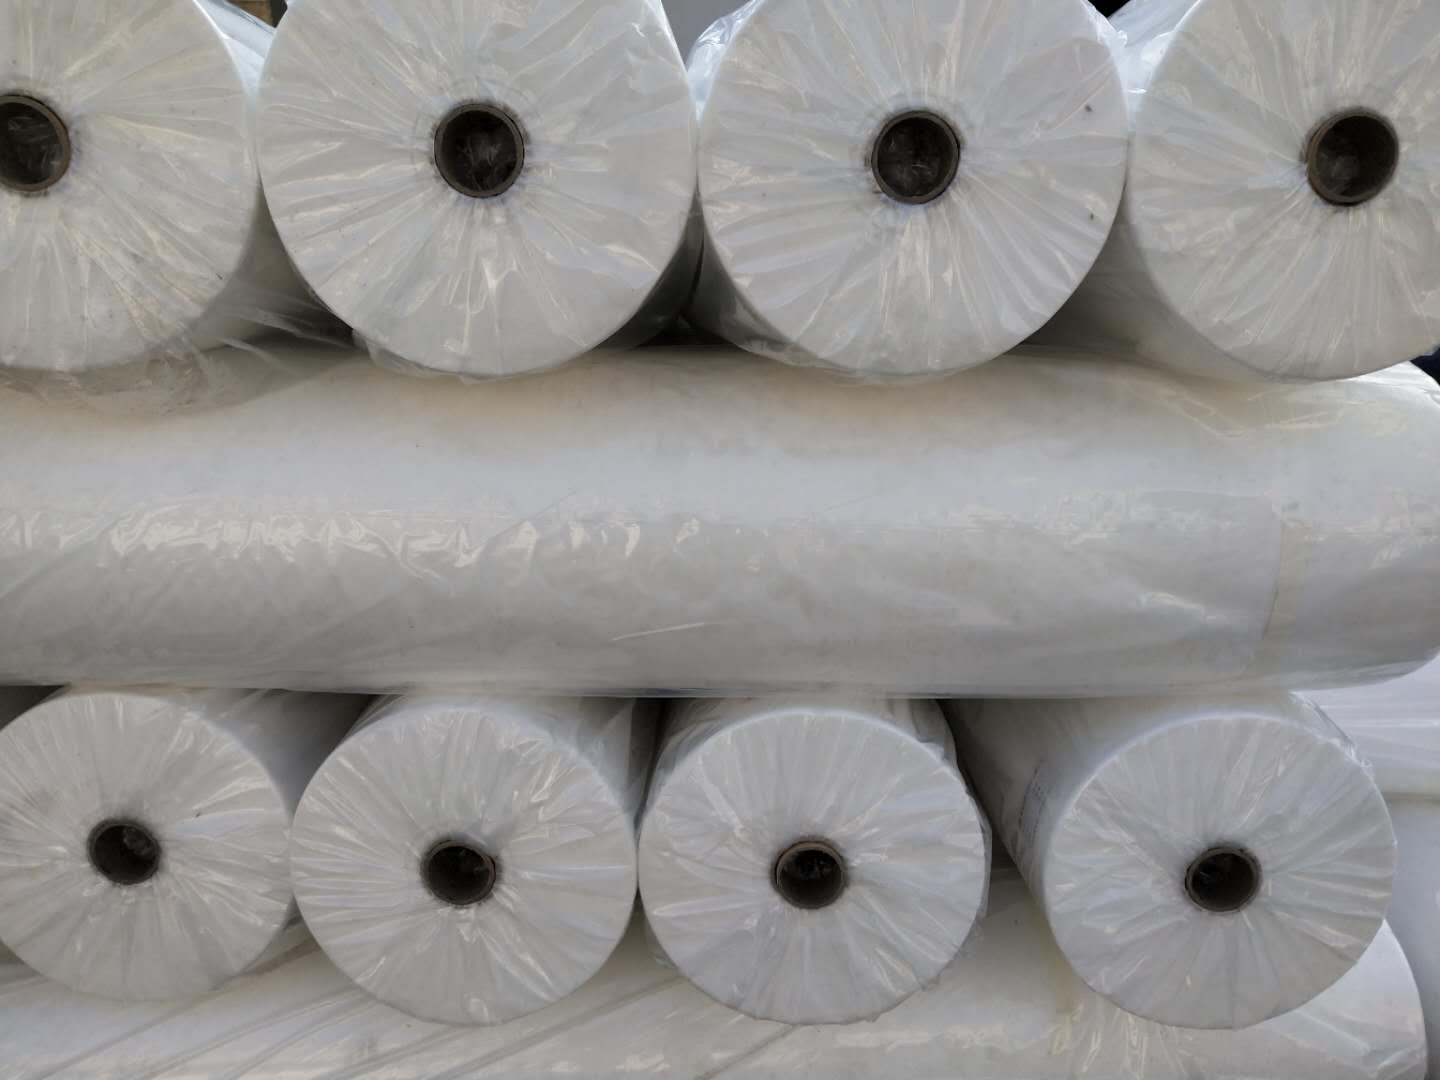 PP Non Woven Fabric In Roll For Bag Making Disposable Polypropylene Nonwovens Fabrics Virgin Material